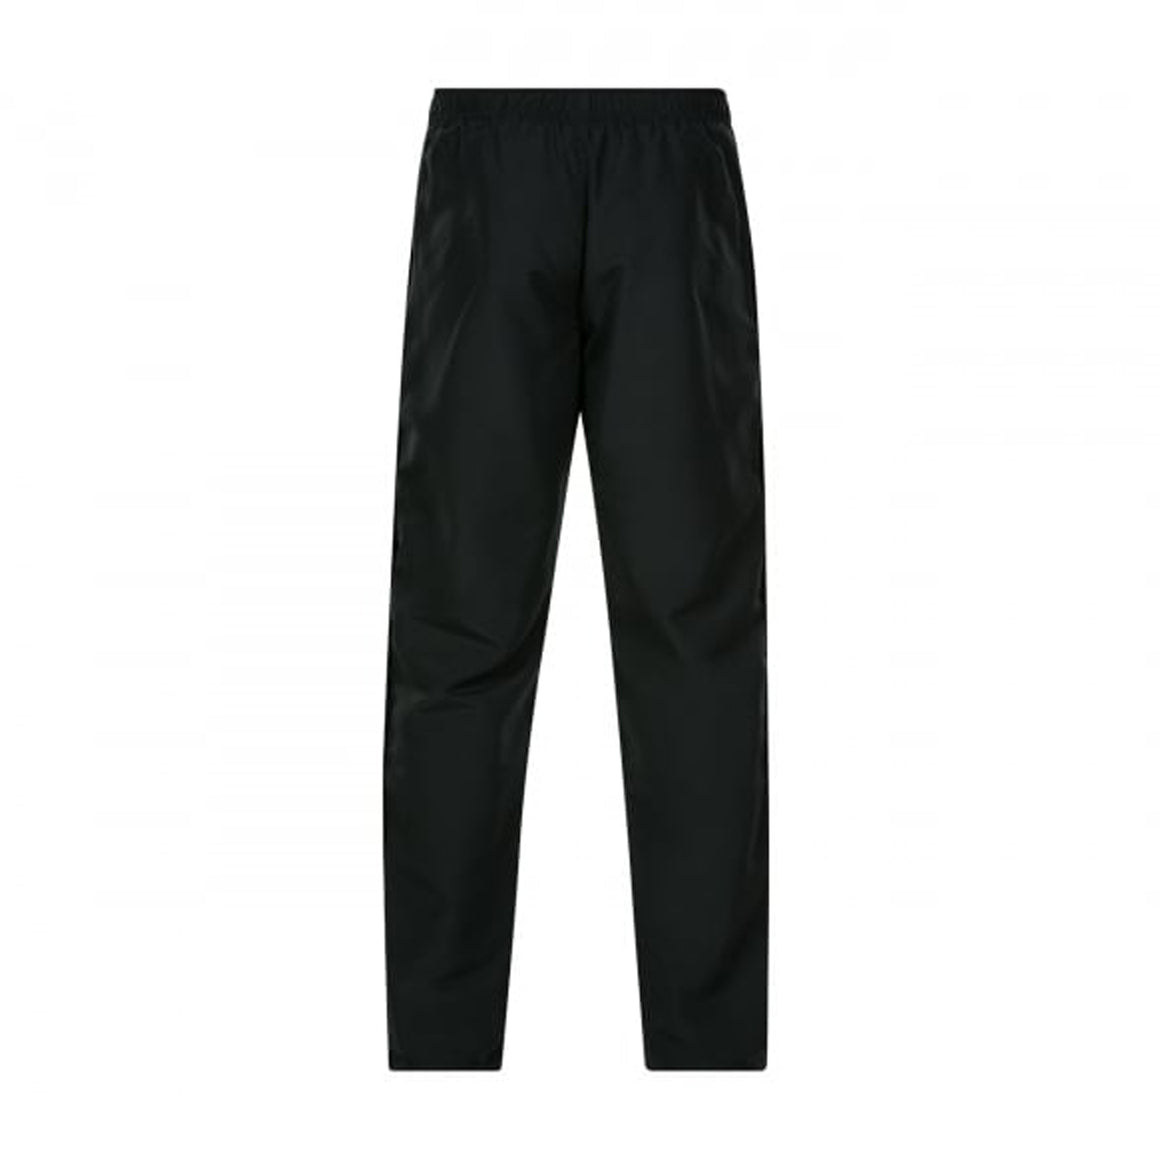 Tapered OH Stadium Pant for Men in Black